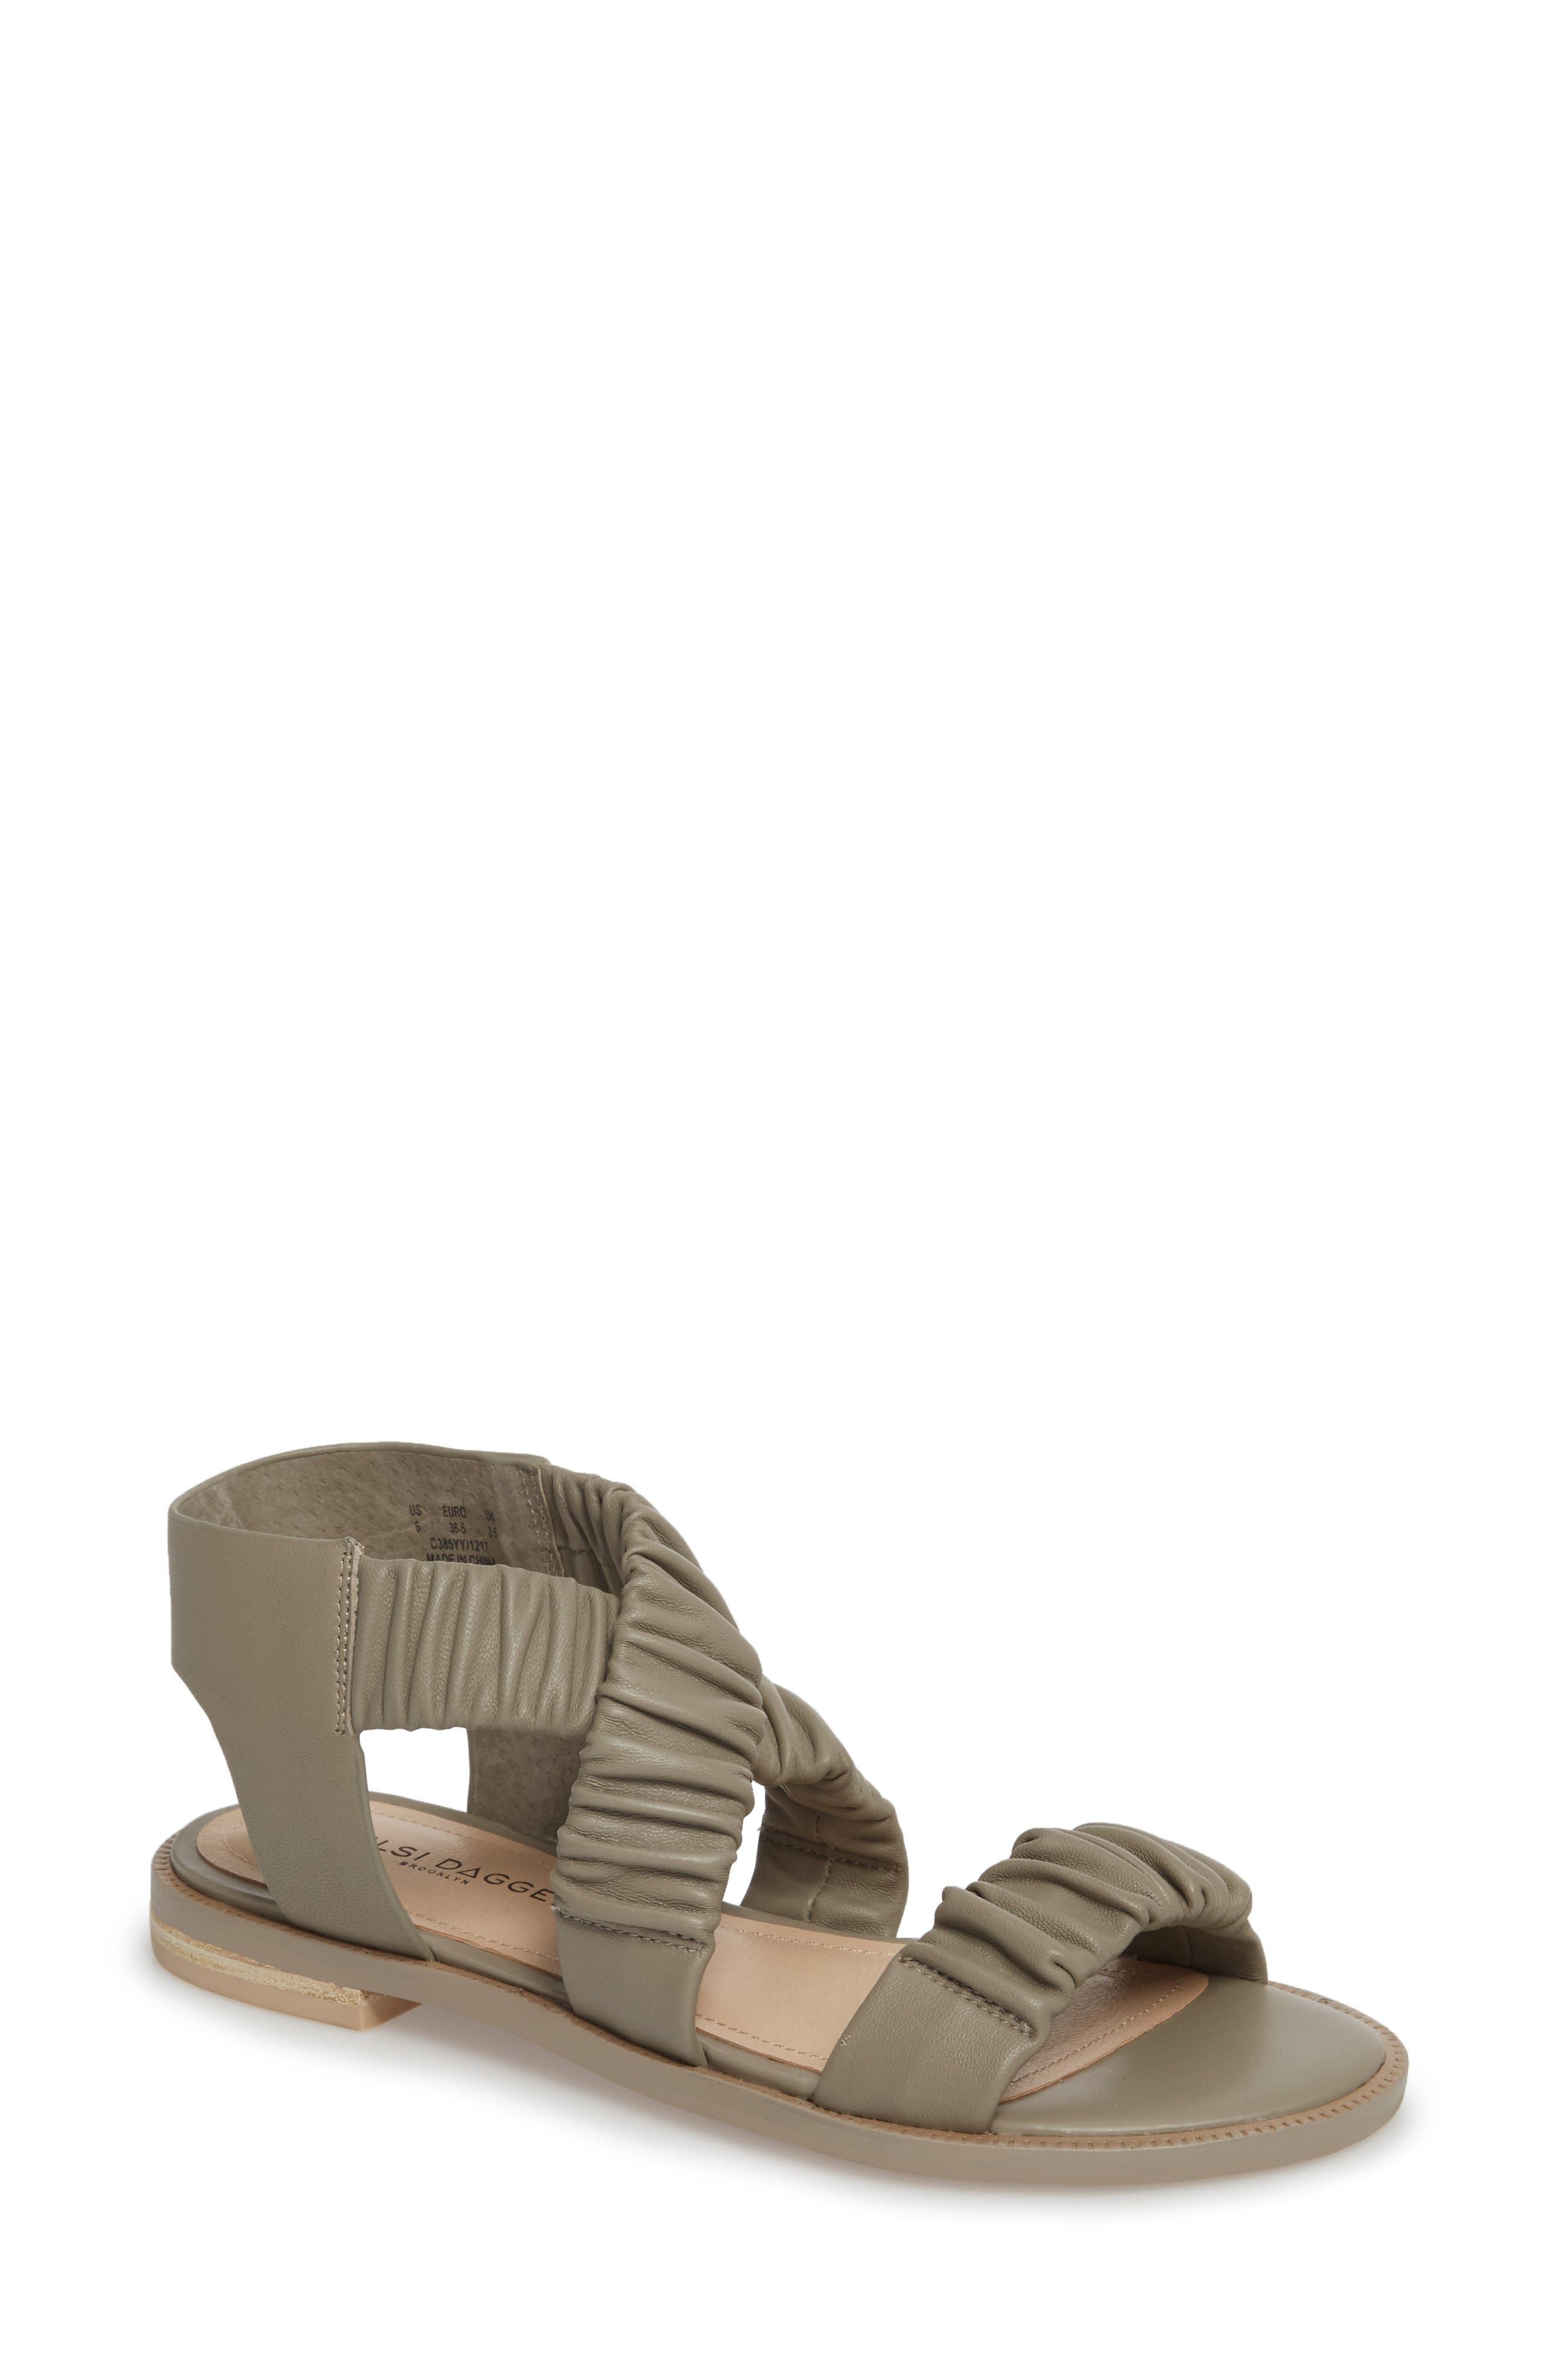 Ryder Pleated Flat Sandal,                             Main thumbnail 1, color,                             Clove Leather